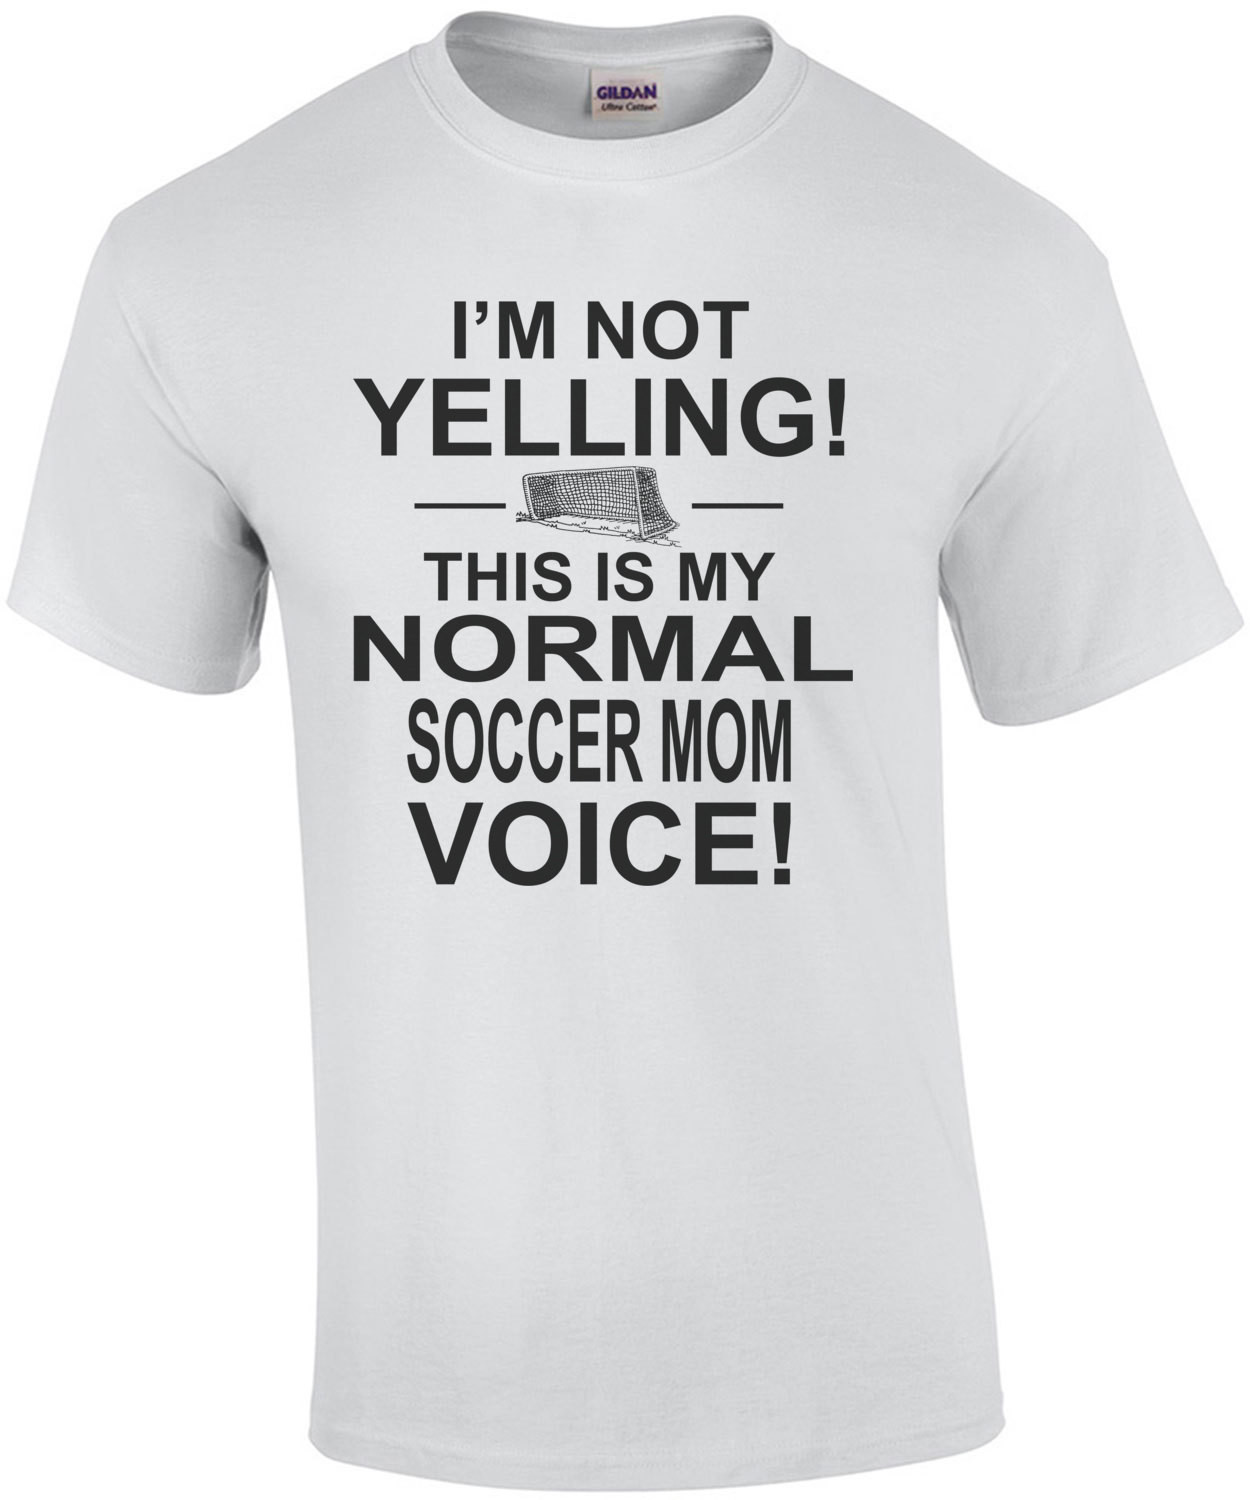 I'm Not Yelling This Is My Normal Soccer Mom Voice T-Shirt